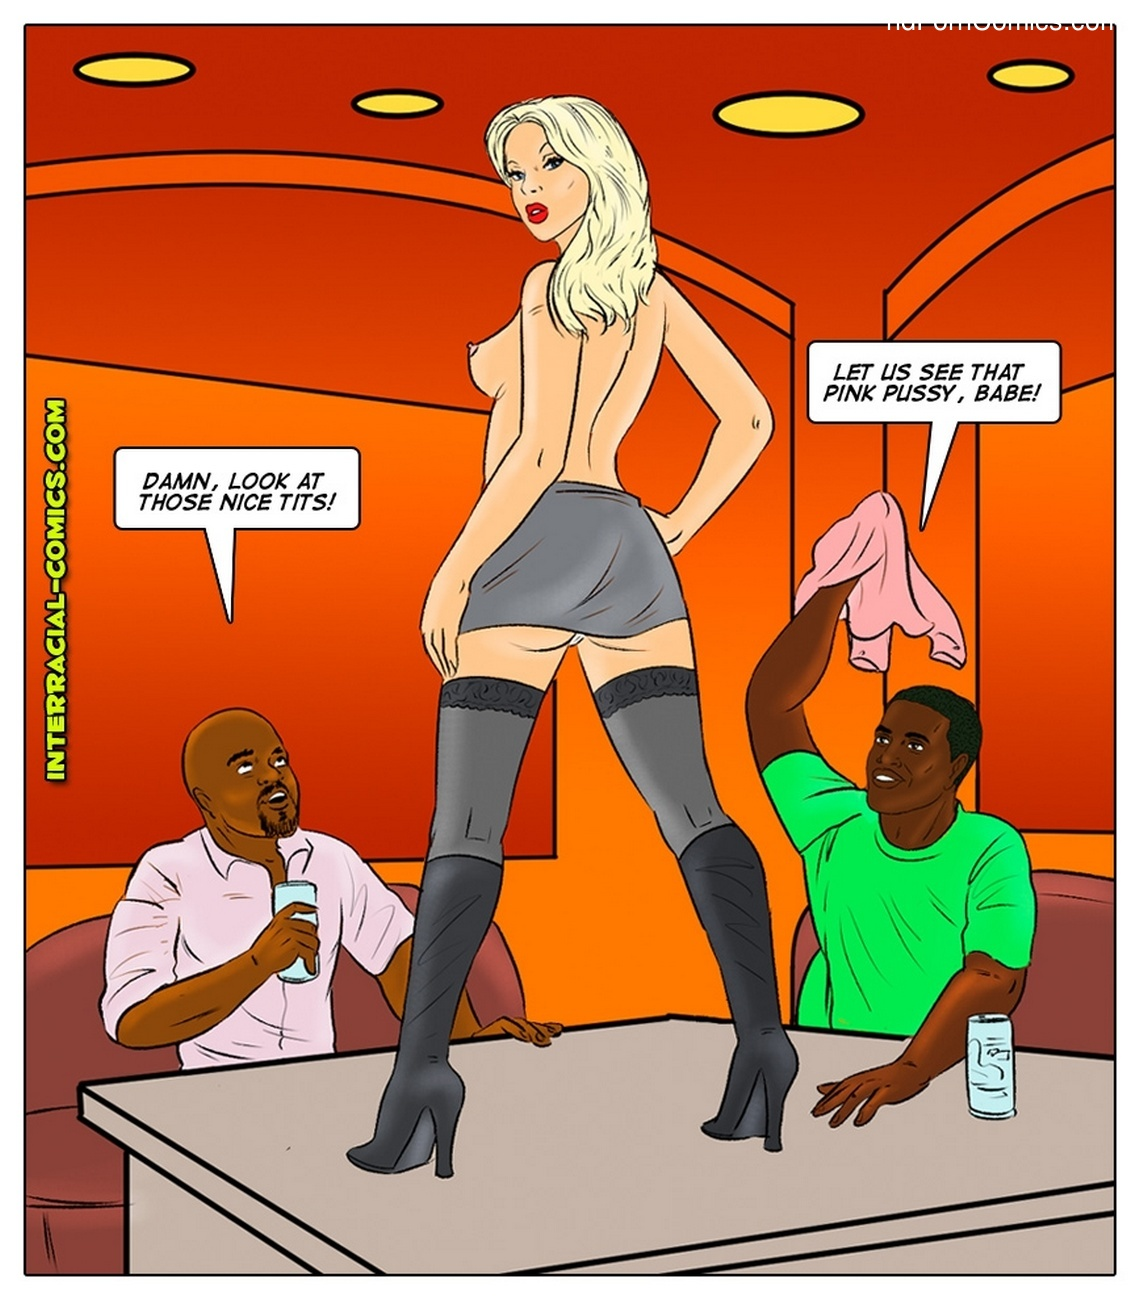 All-Part-Of-The-Job12 free sex comic